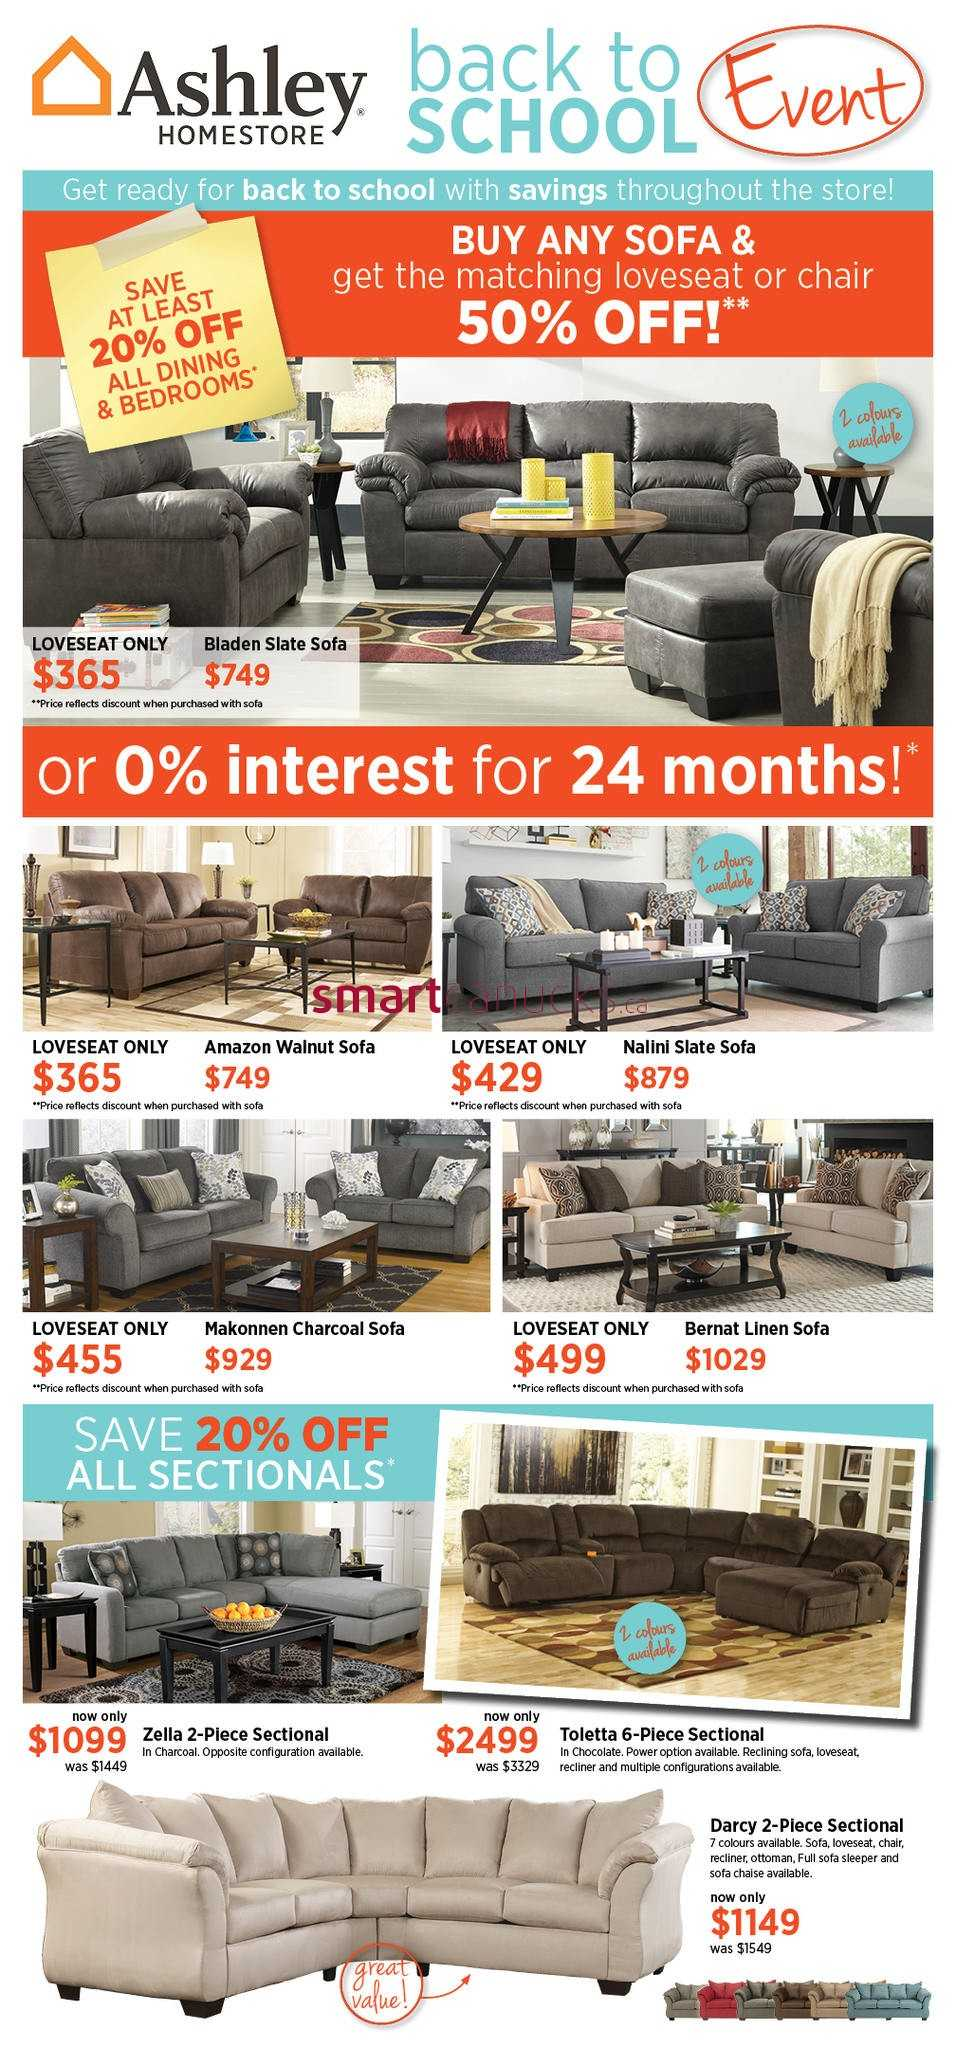 Ashley furniture homestore atlantic flyer august 9 to 29 for Ashley furniture homestore canada